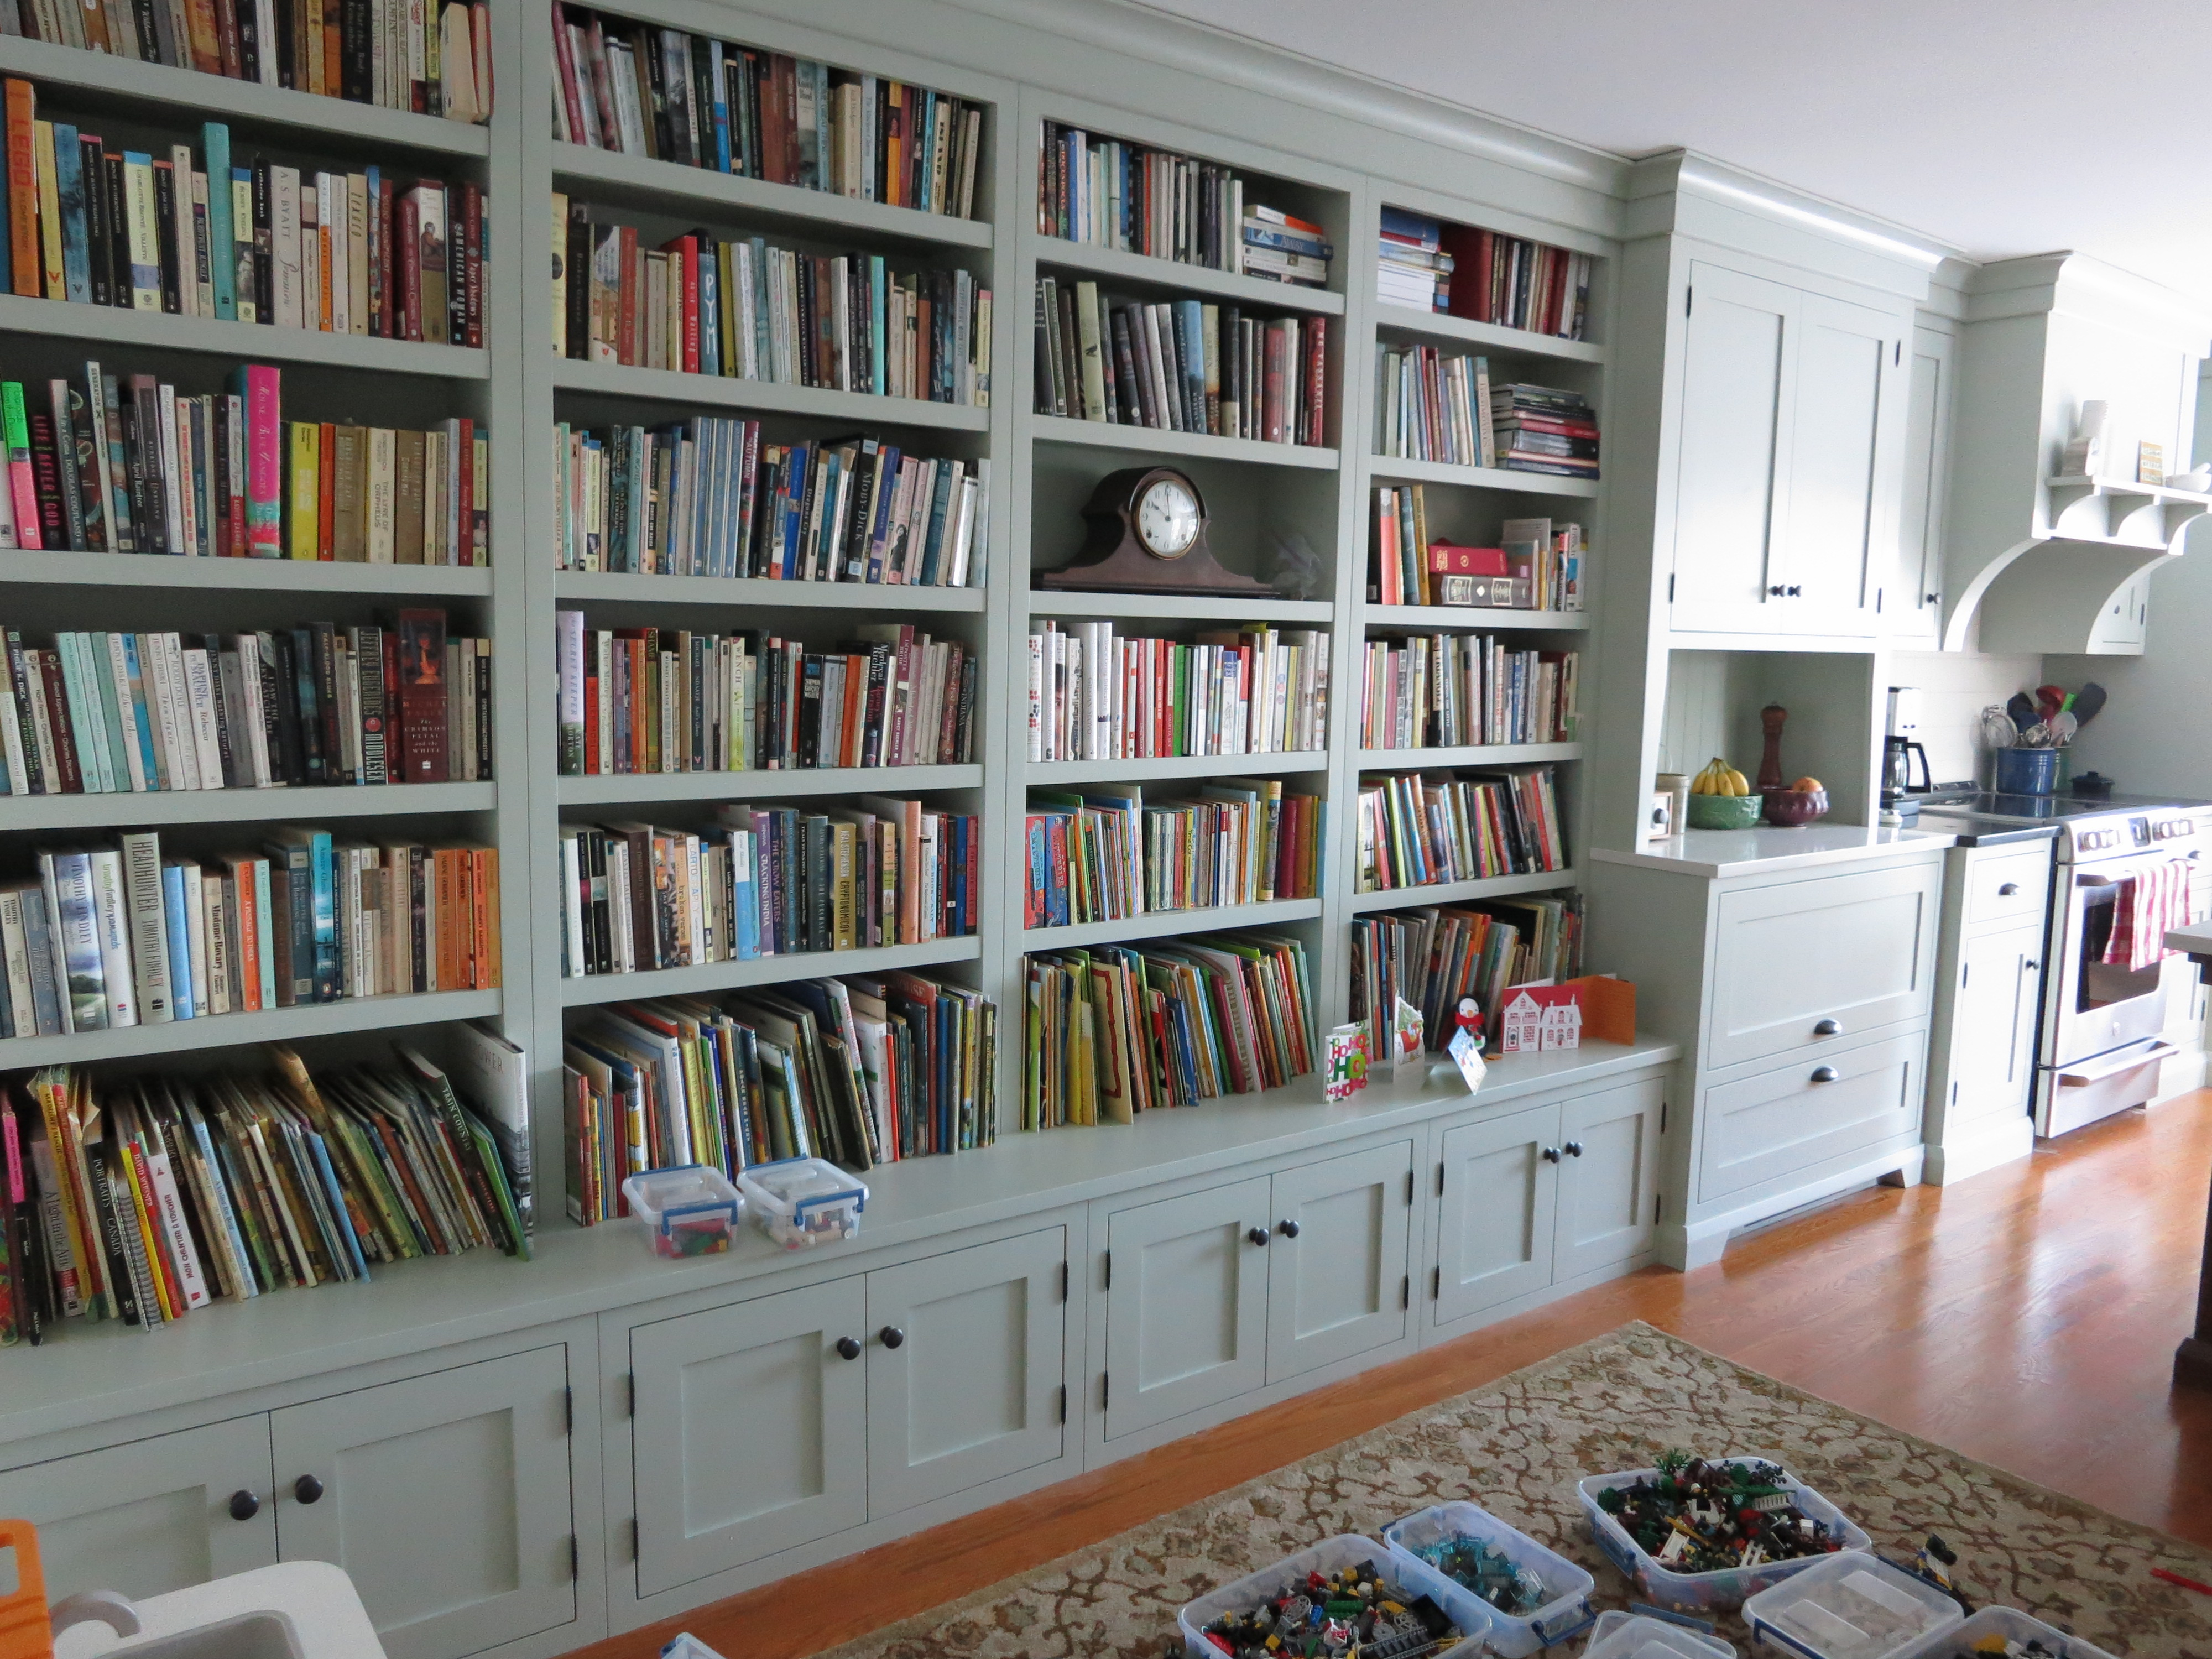 What Does Your Library Look Like? |